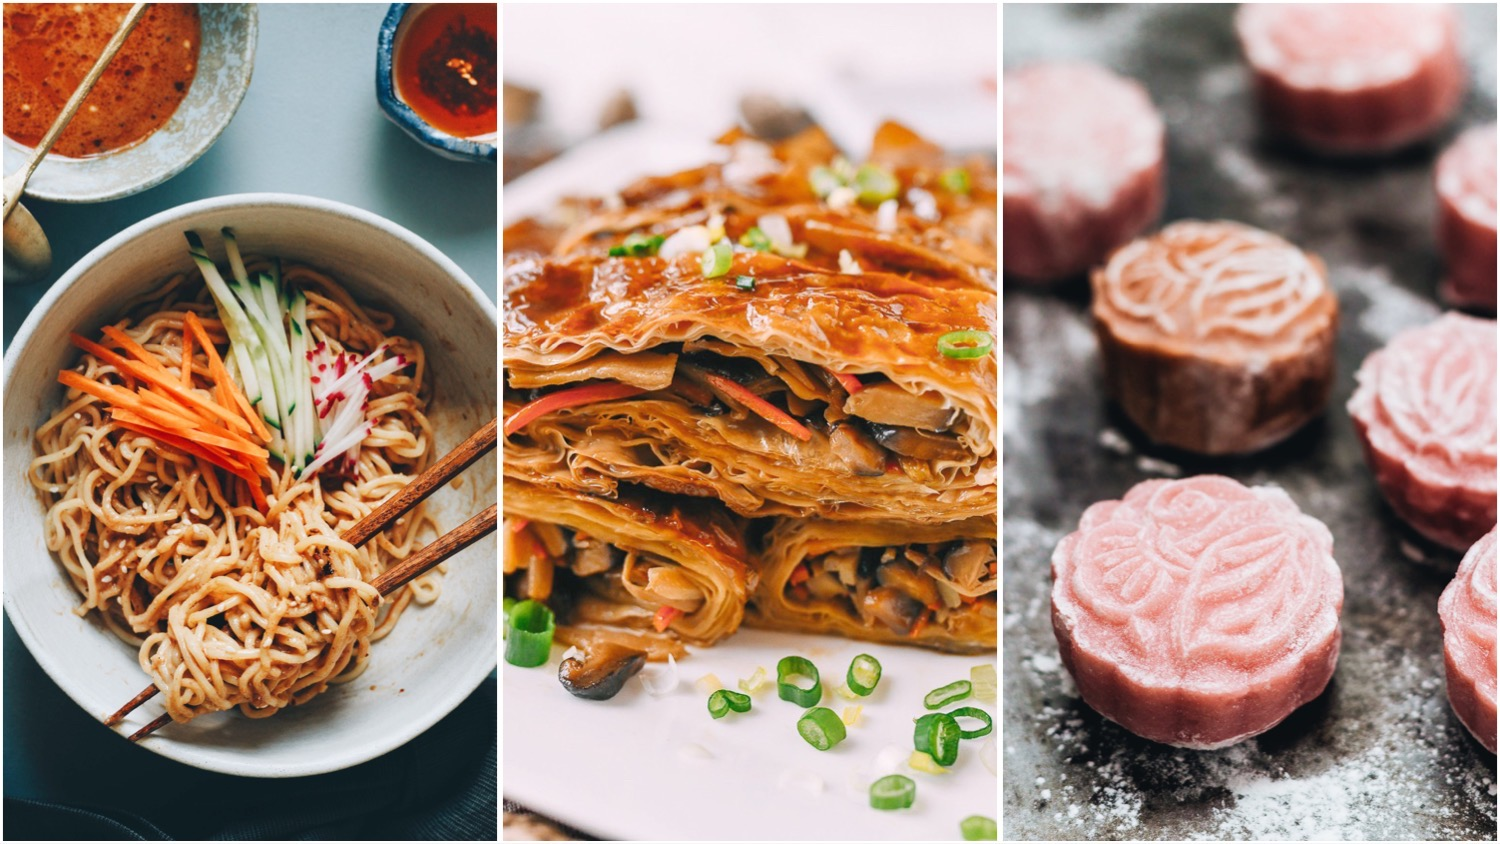 6 Recipes for the Mid-Autumn Festival, Made Vegan